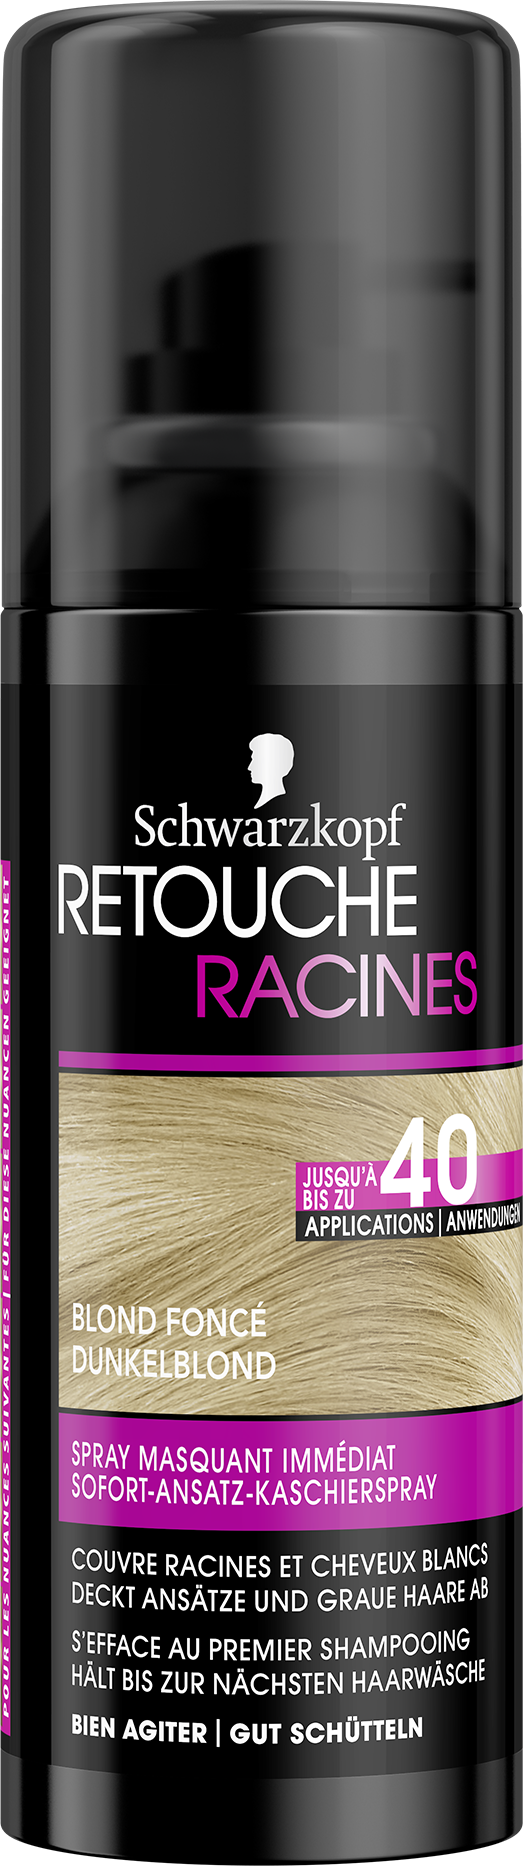 FRCH_SK_CSPR_CGP_DO_RootRetoucher_DarkBlond_120_0219_P1